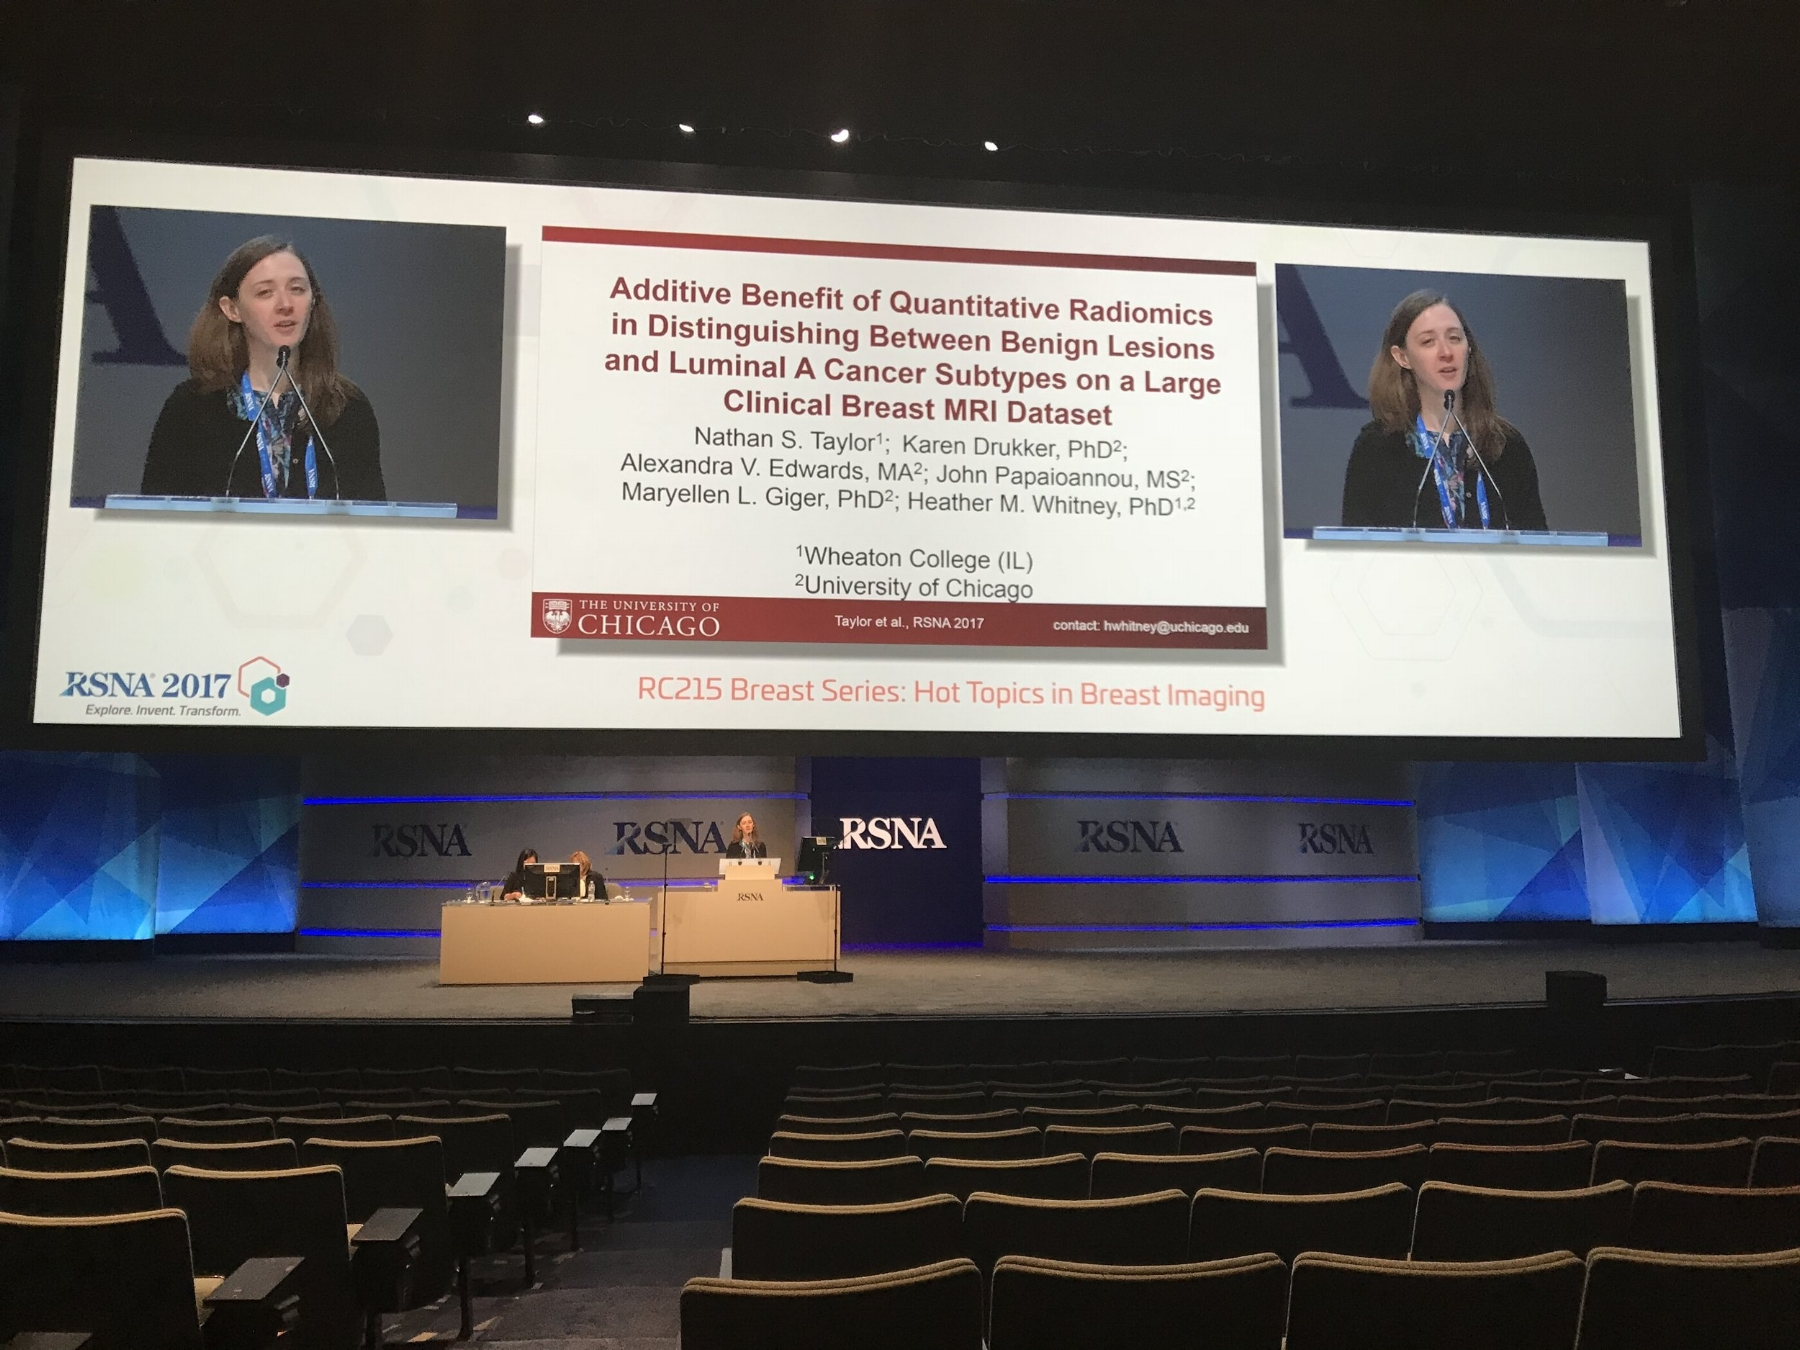 Our presentation during RSNA. The room wasn't *that* empty, but indeed there were not 4200 people interested in the talk. (photo credit: Allen Newton. Hurrah for grad school friends who will come and sit through a long session on research that doesn't really relate to their own work.)